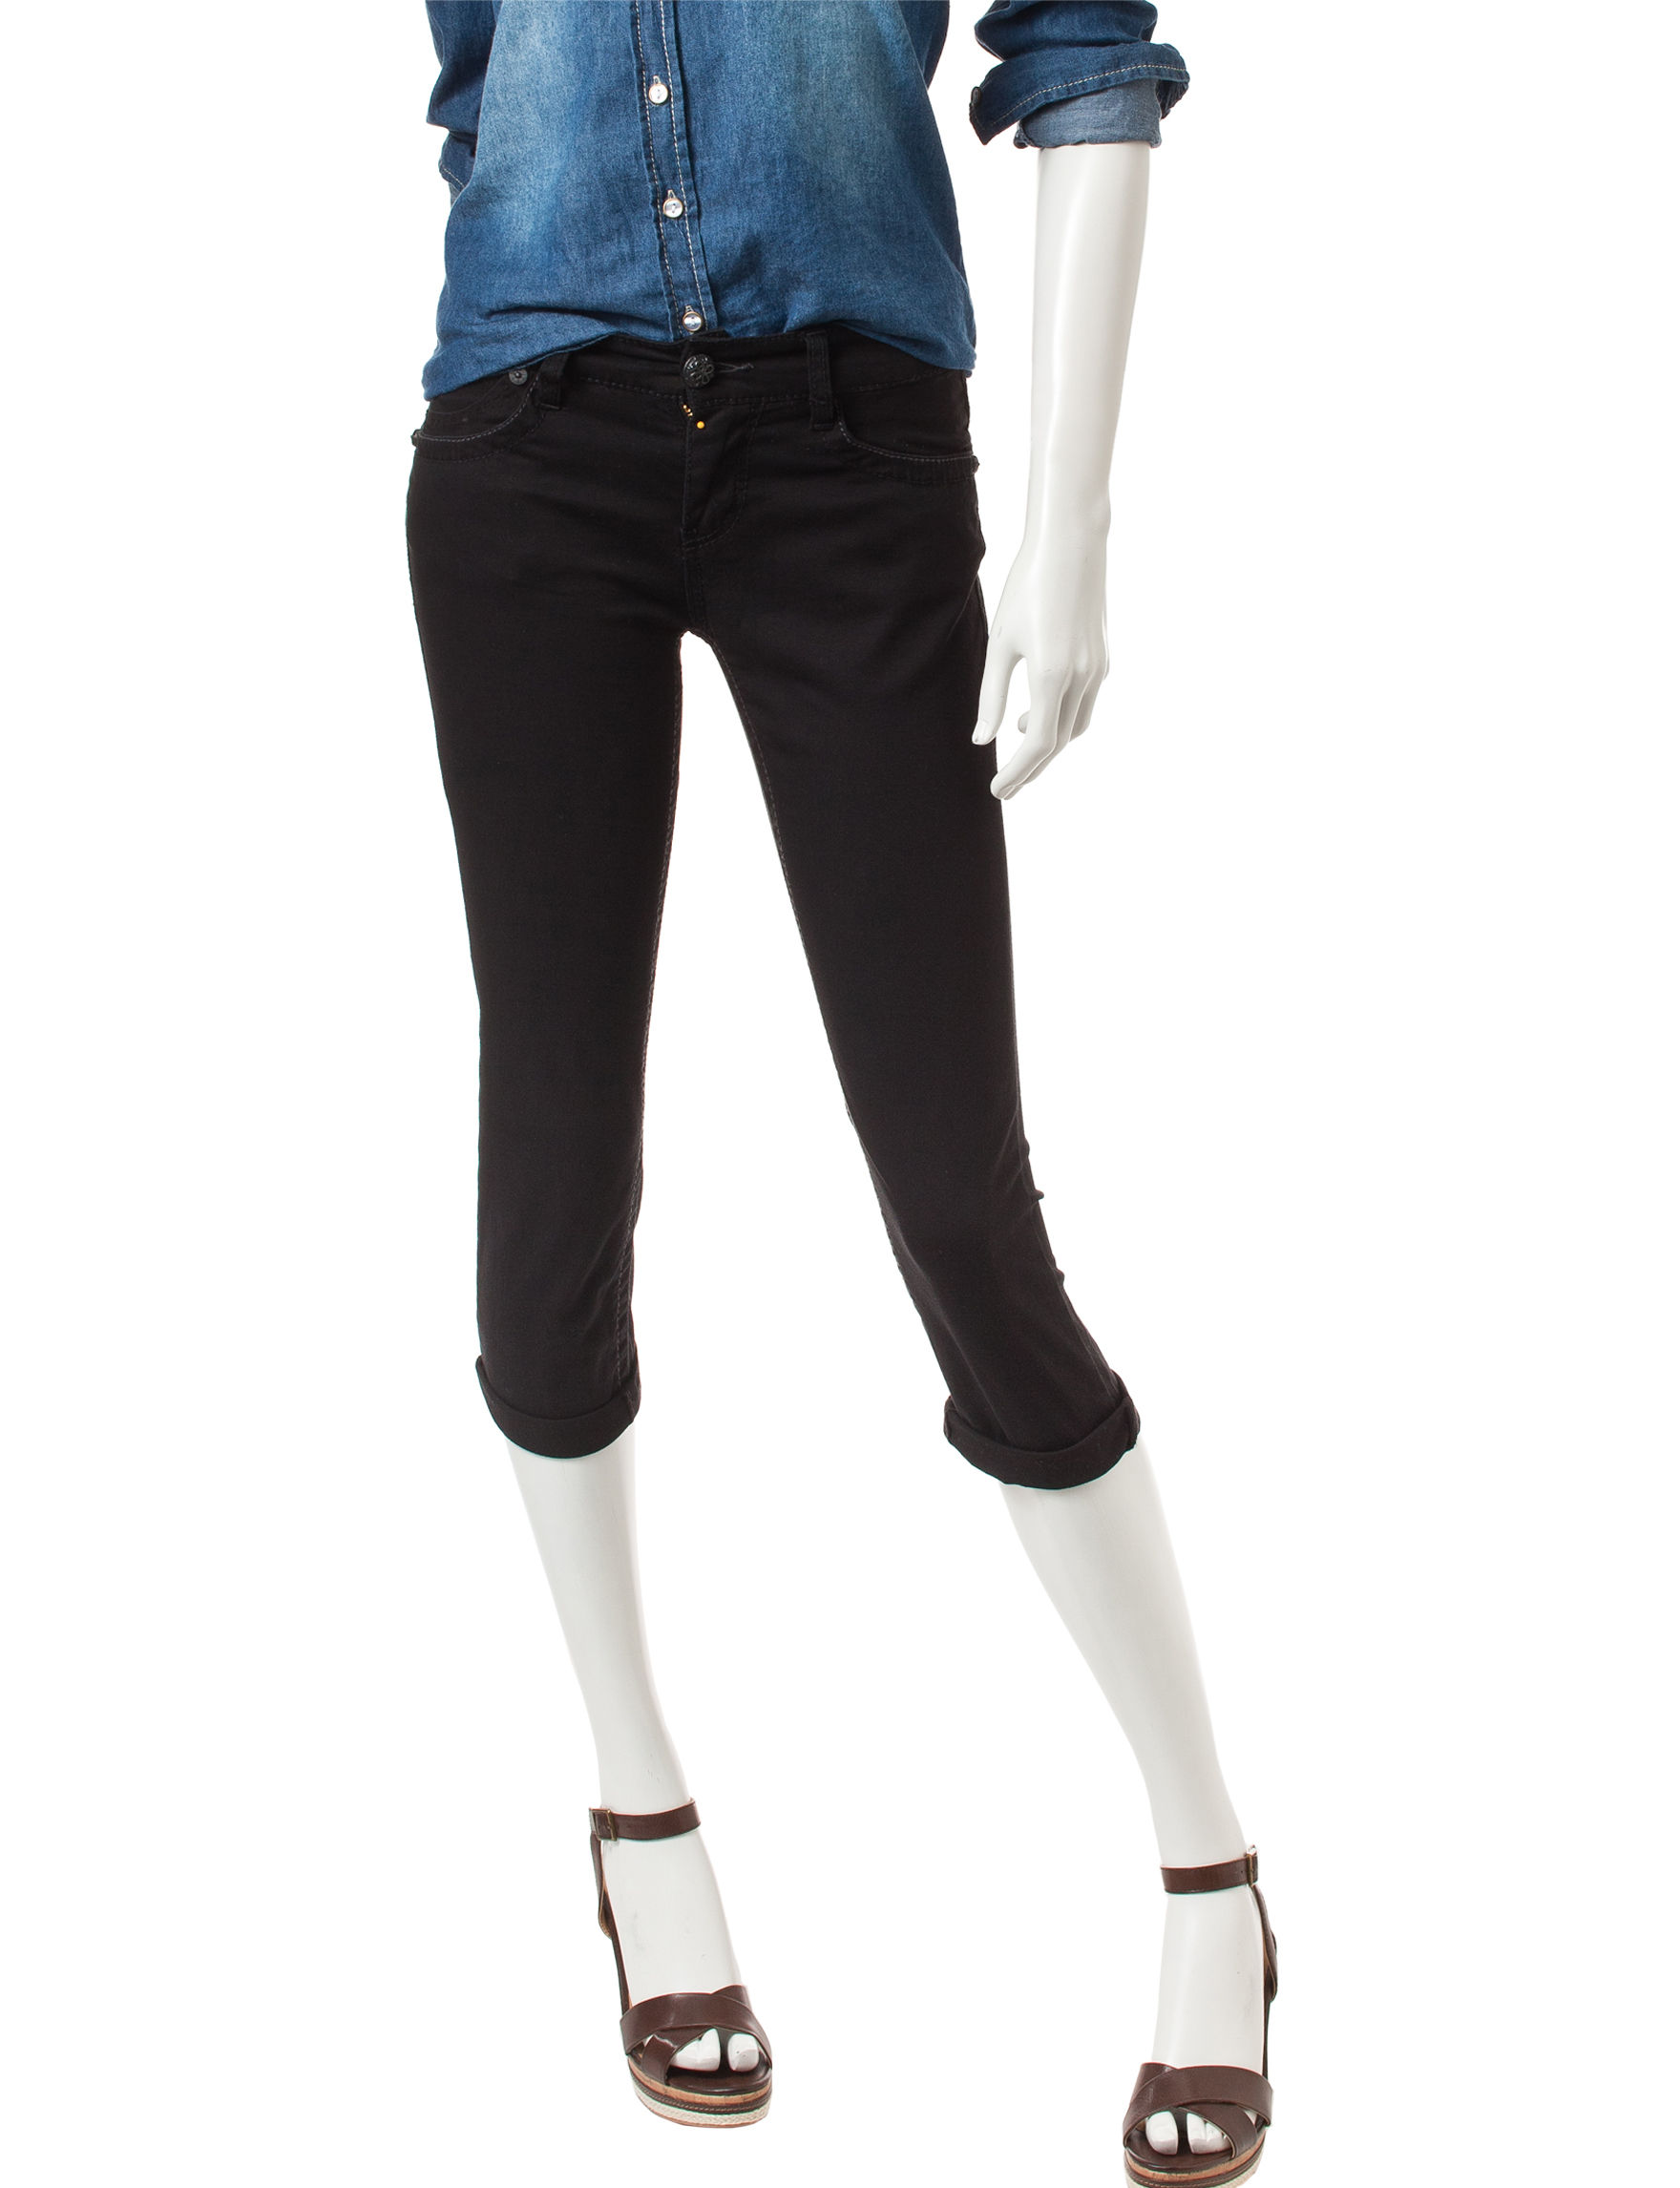 Union Bay Black Capris & Crops